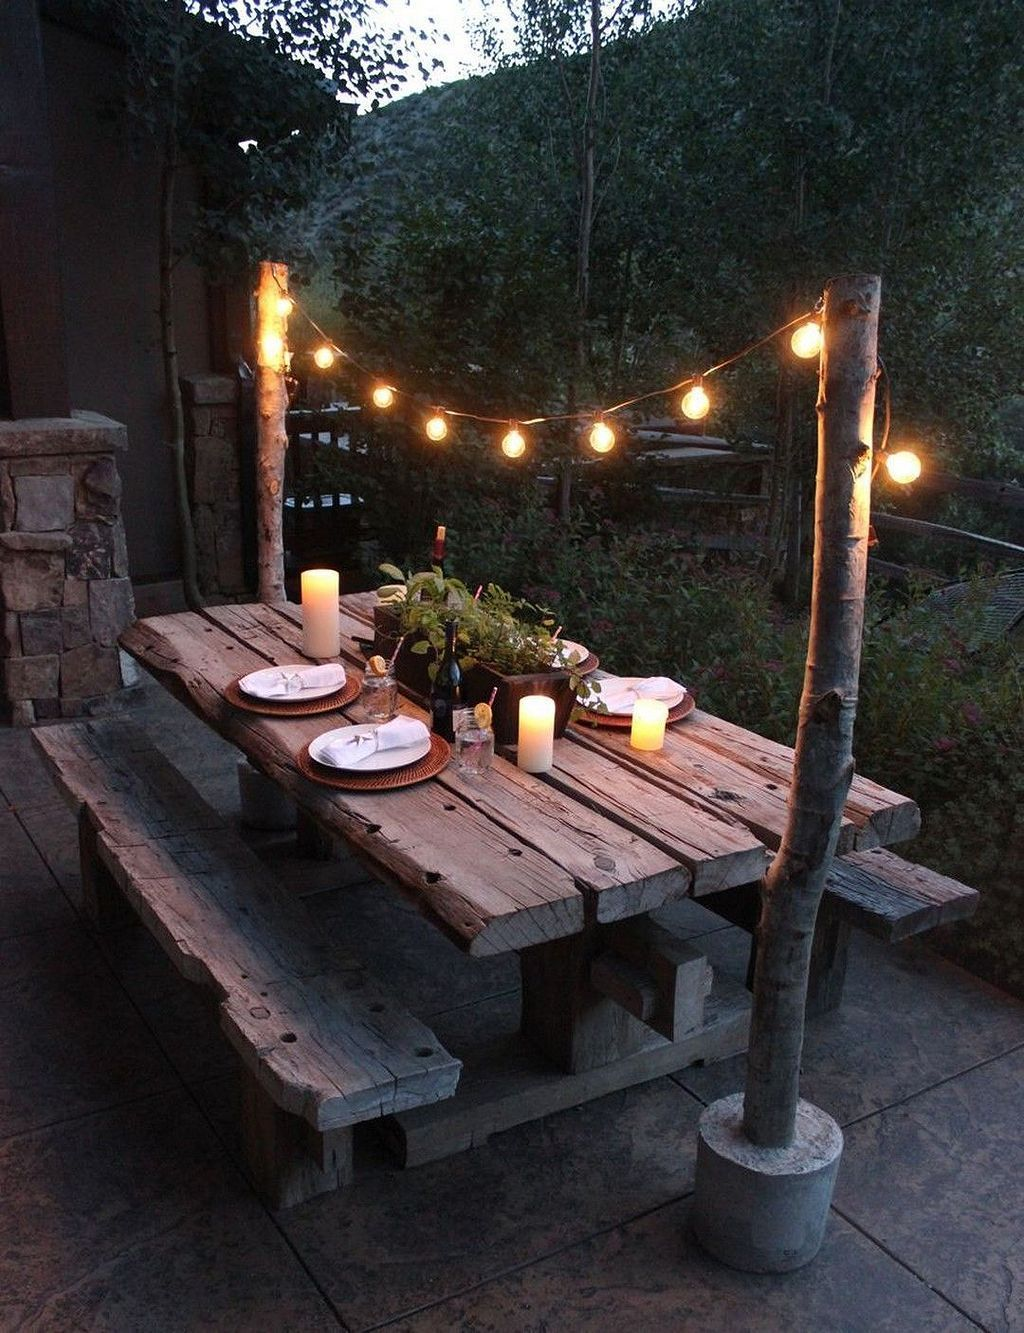 Backyard Picnic Table Dining Area #homedecor